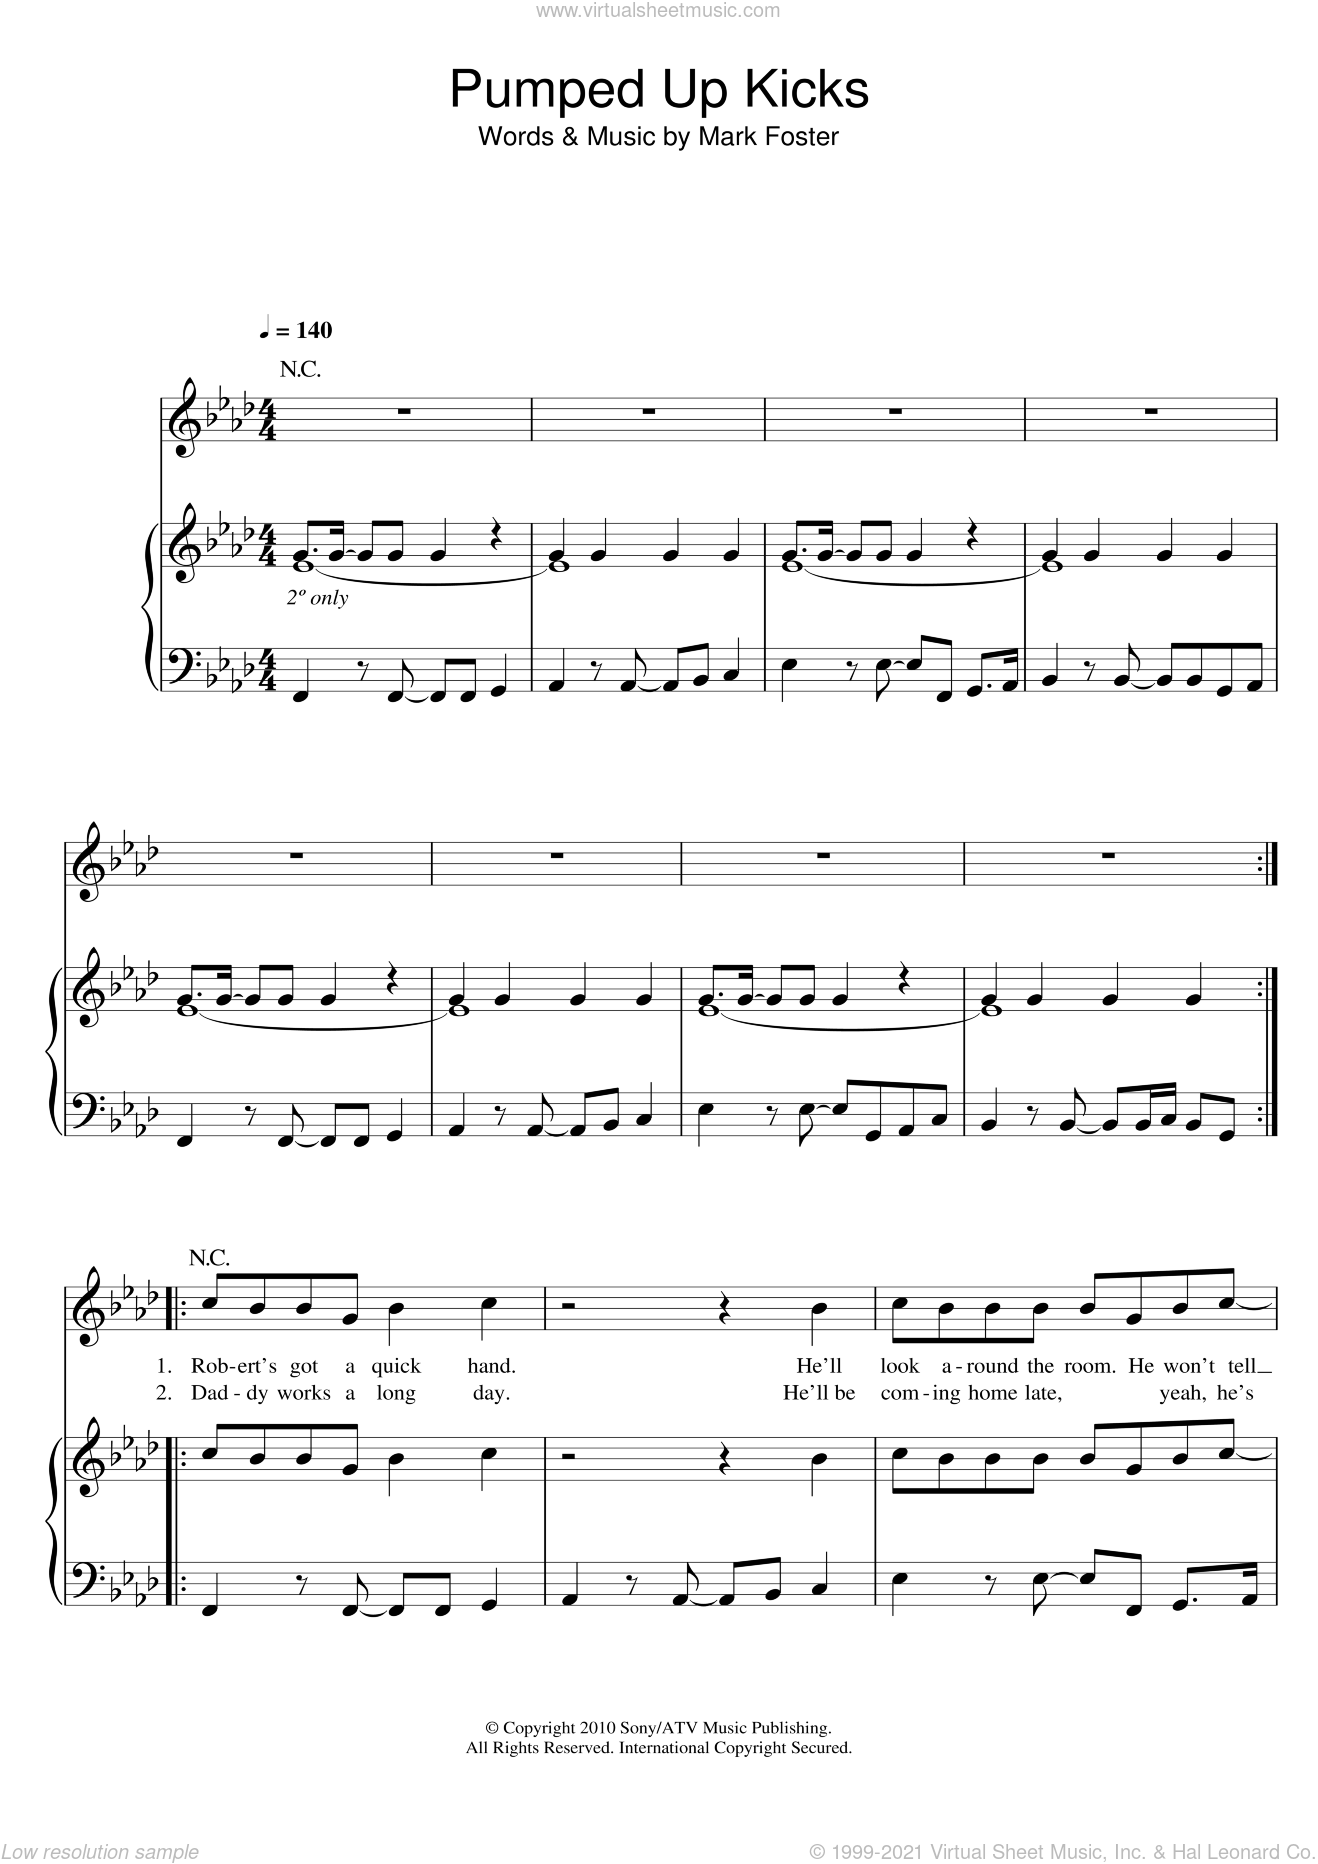 People - Pumped Up Kicks sheet music for voice, piano or guitar